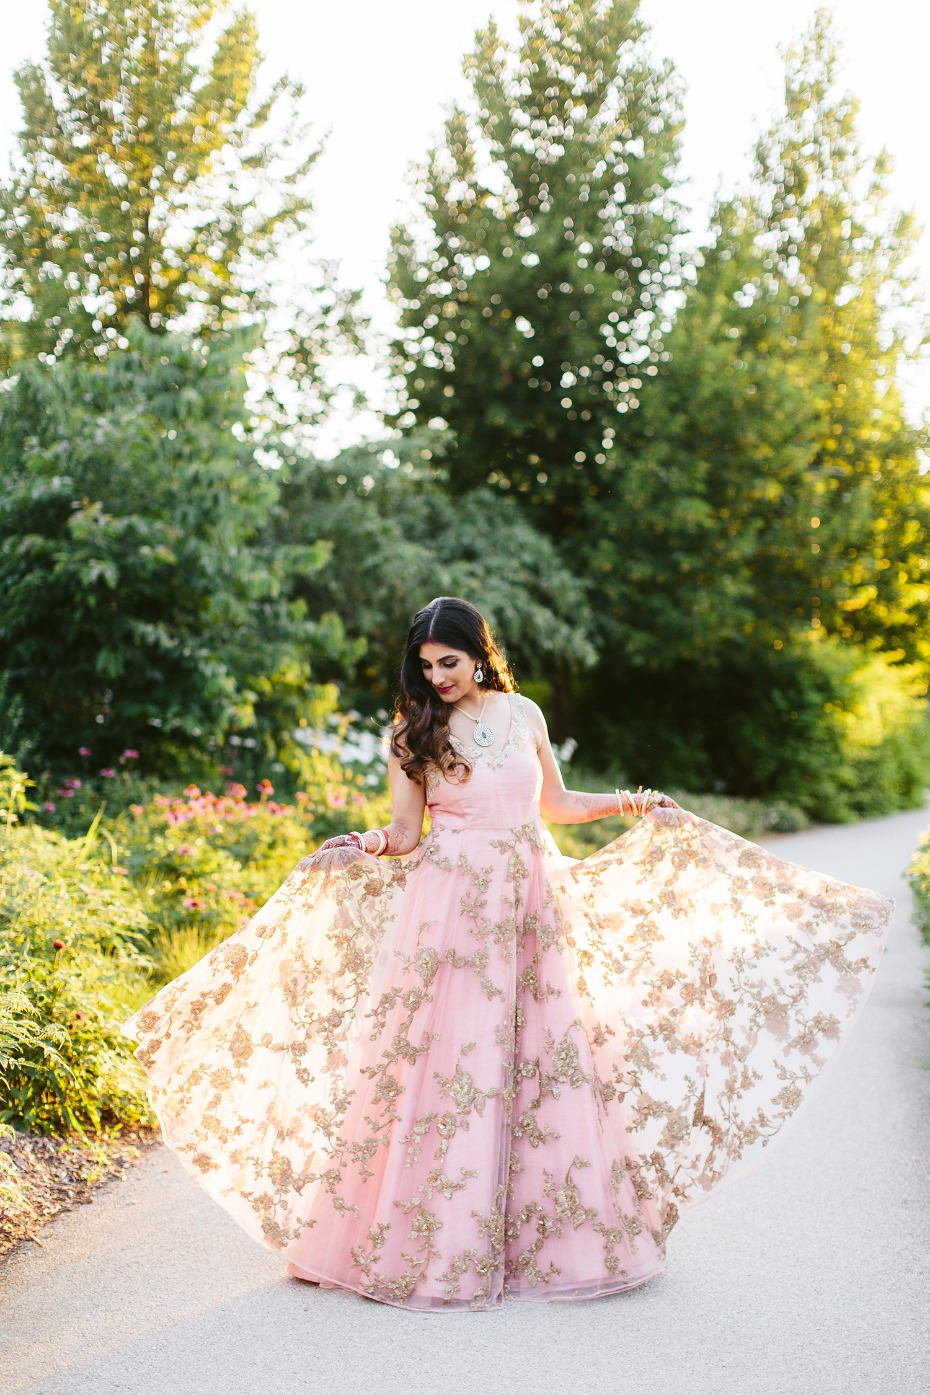 Shyamal & Bhumika reception gown in blush and gold